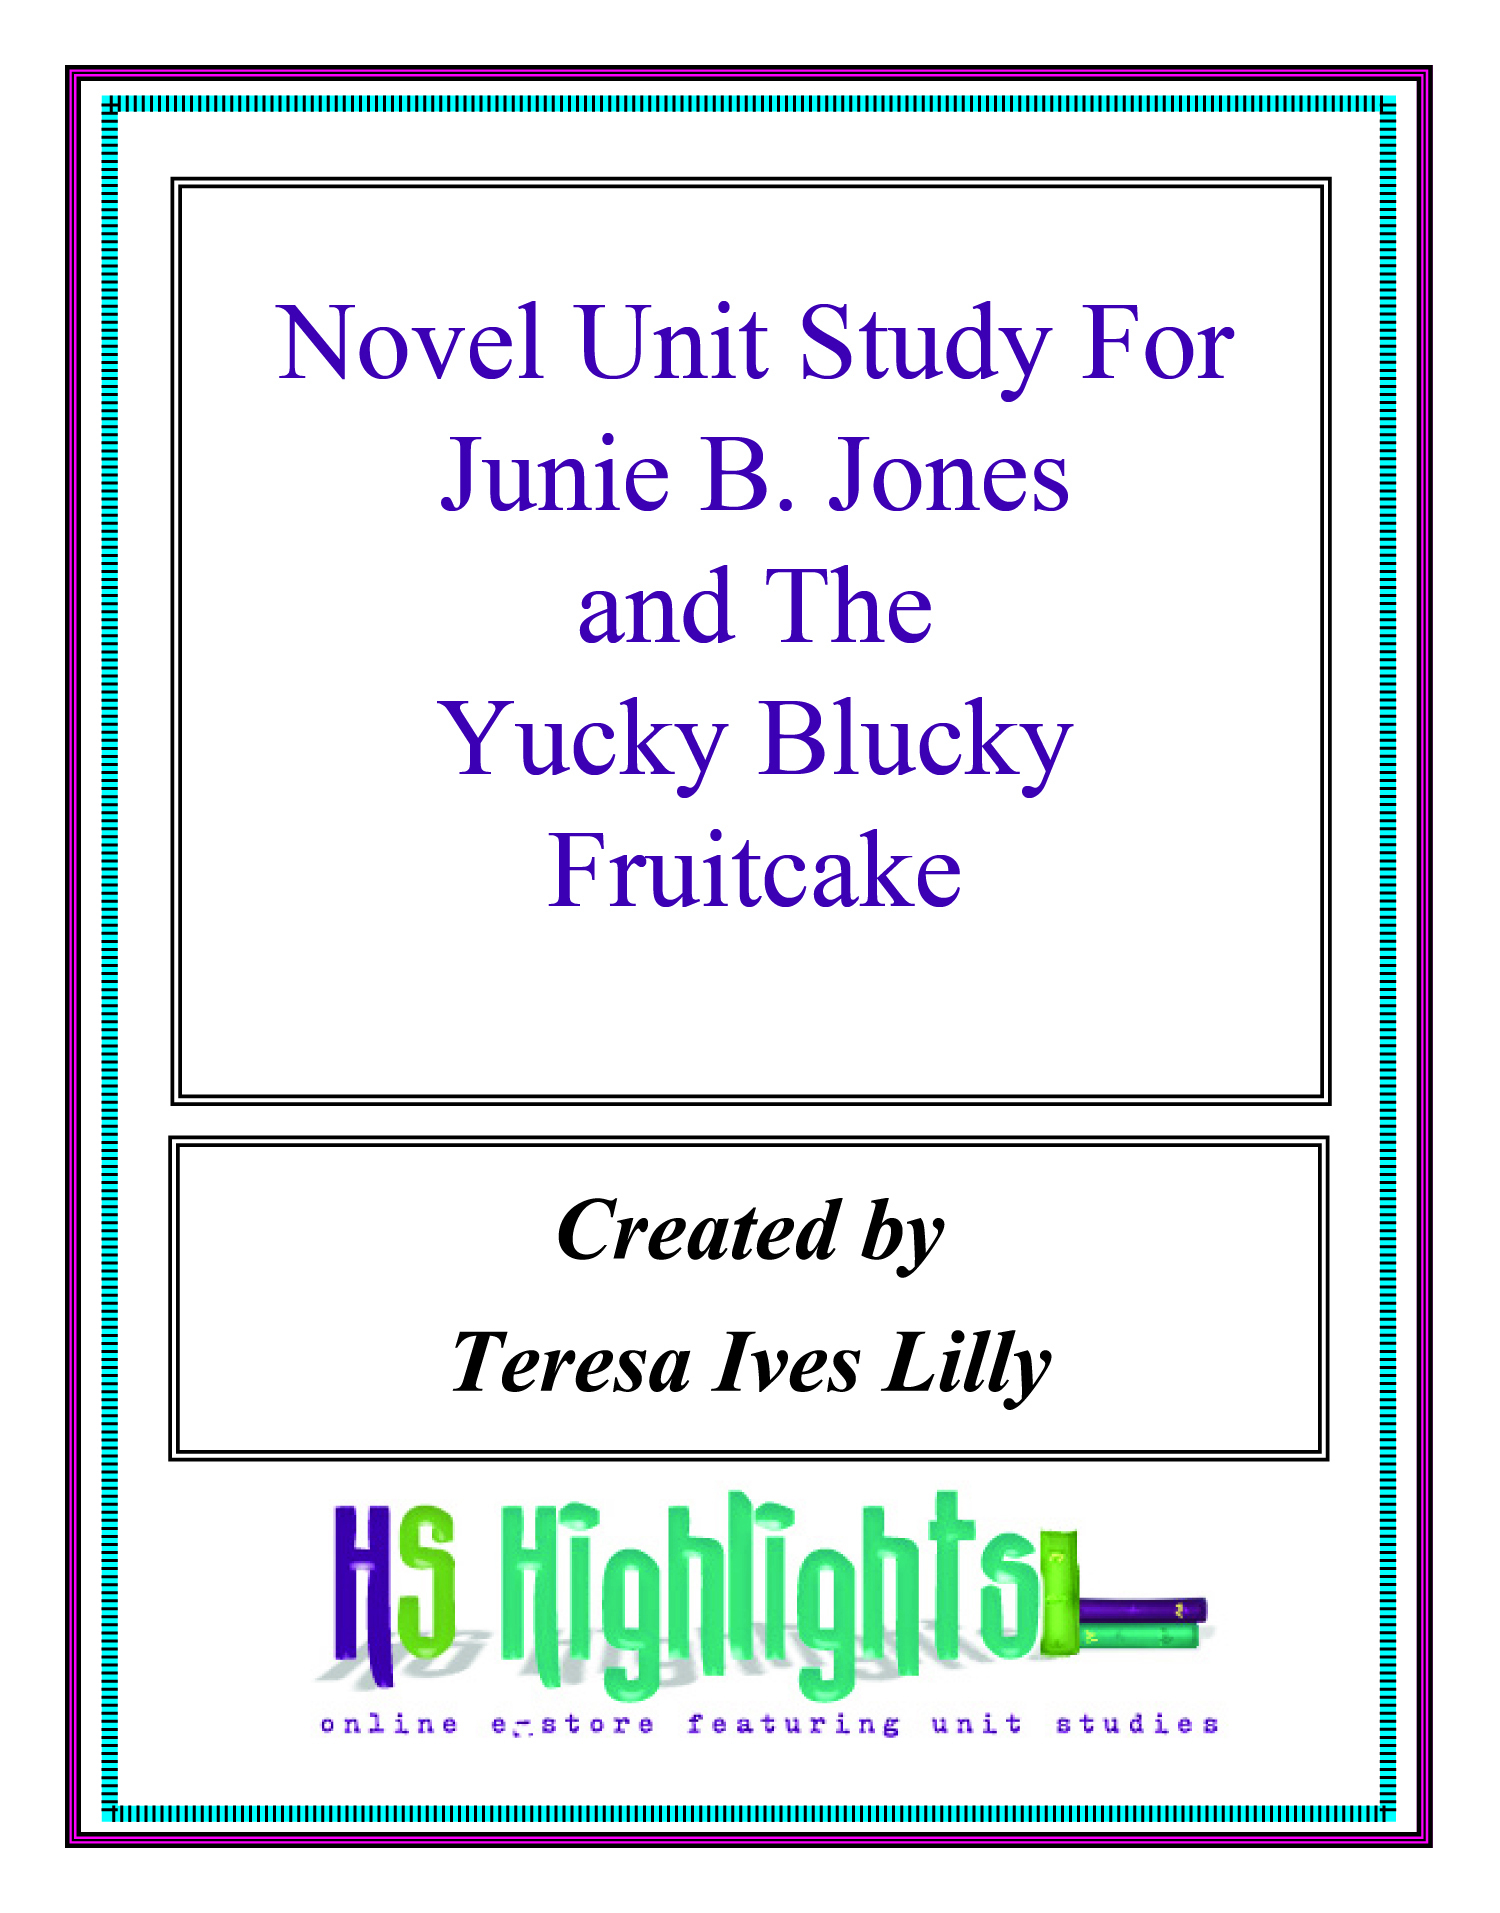 Novel Unit Study For Junie B. Jones and  the Yucky Blucky Fruitcake